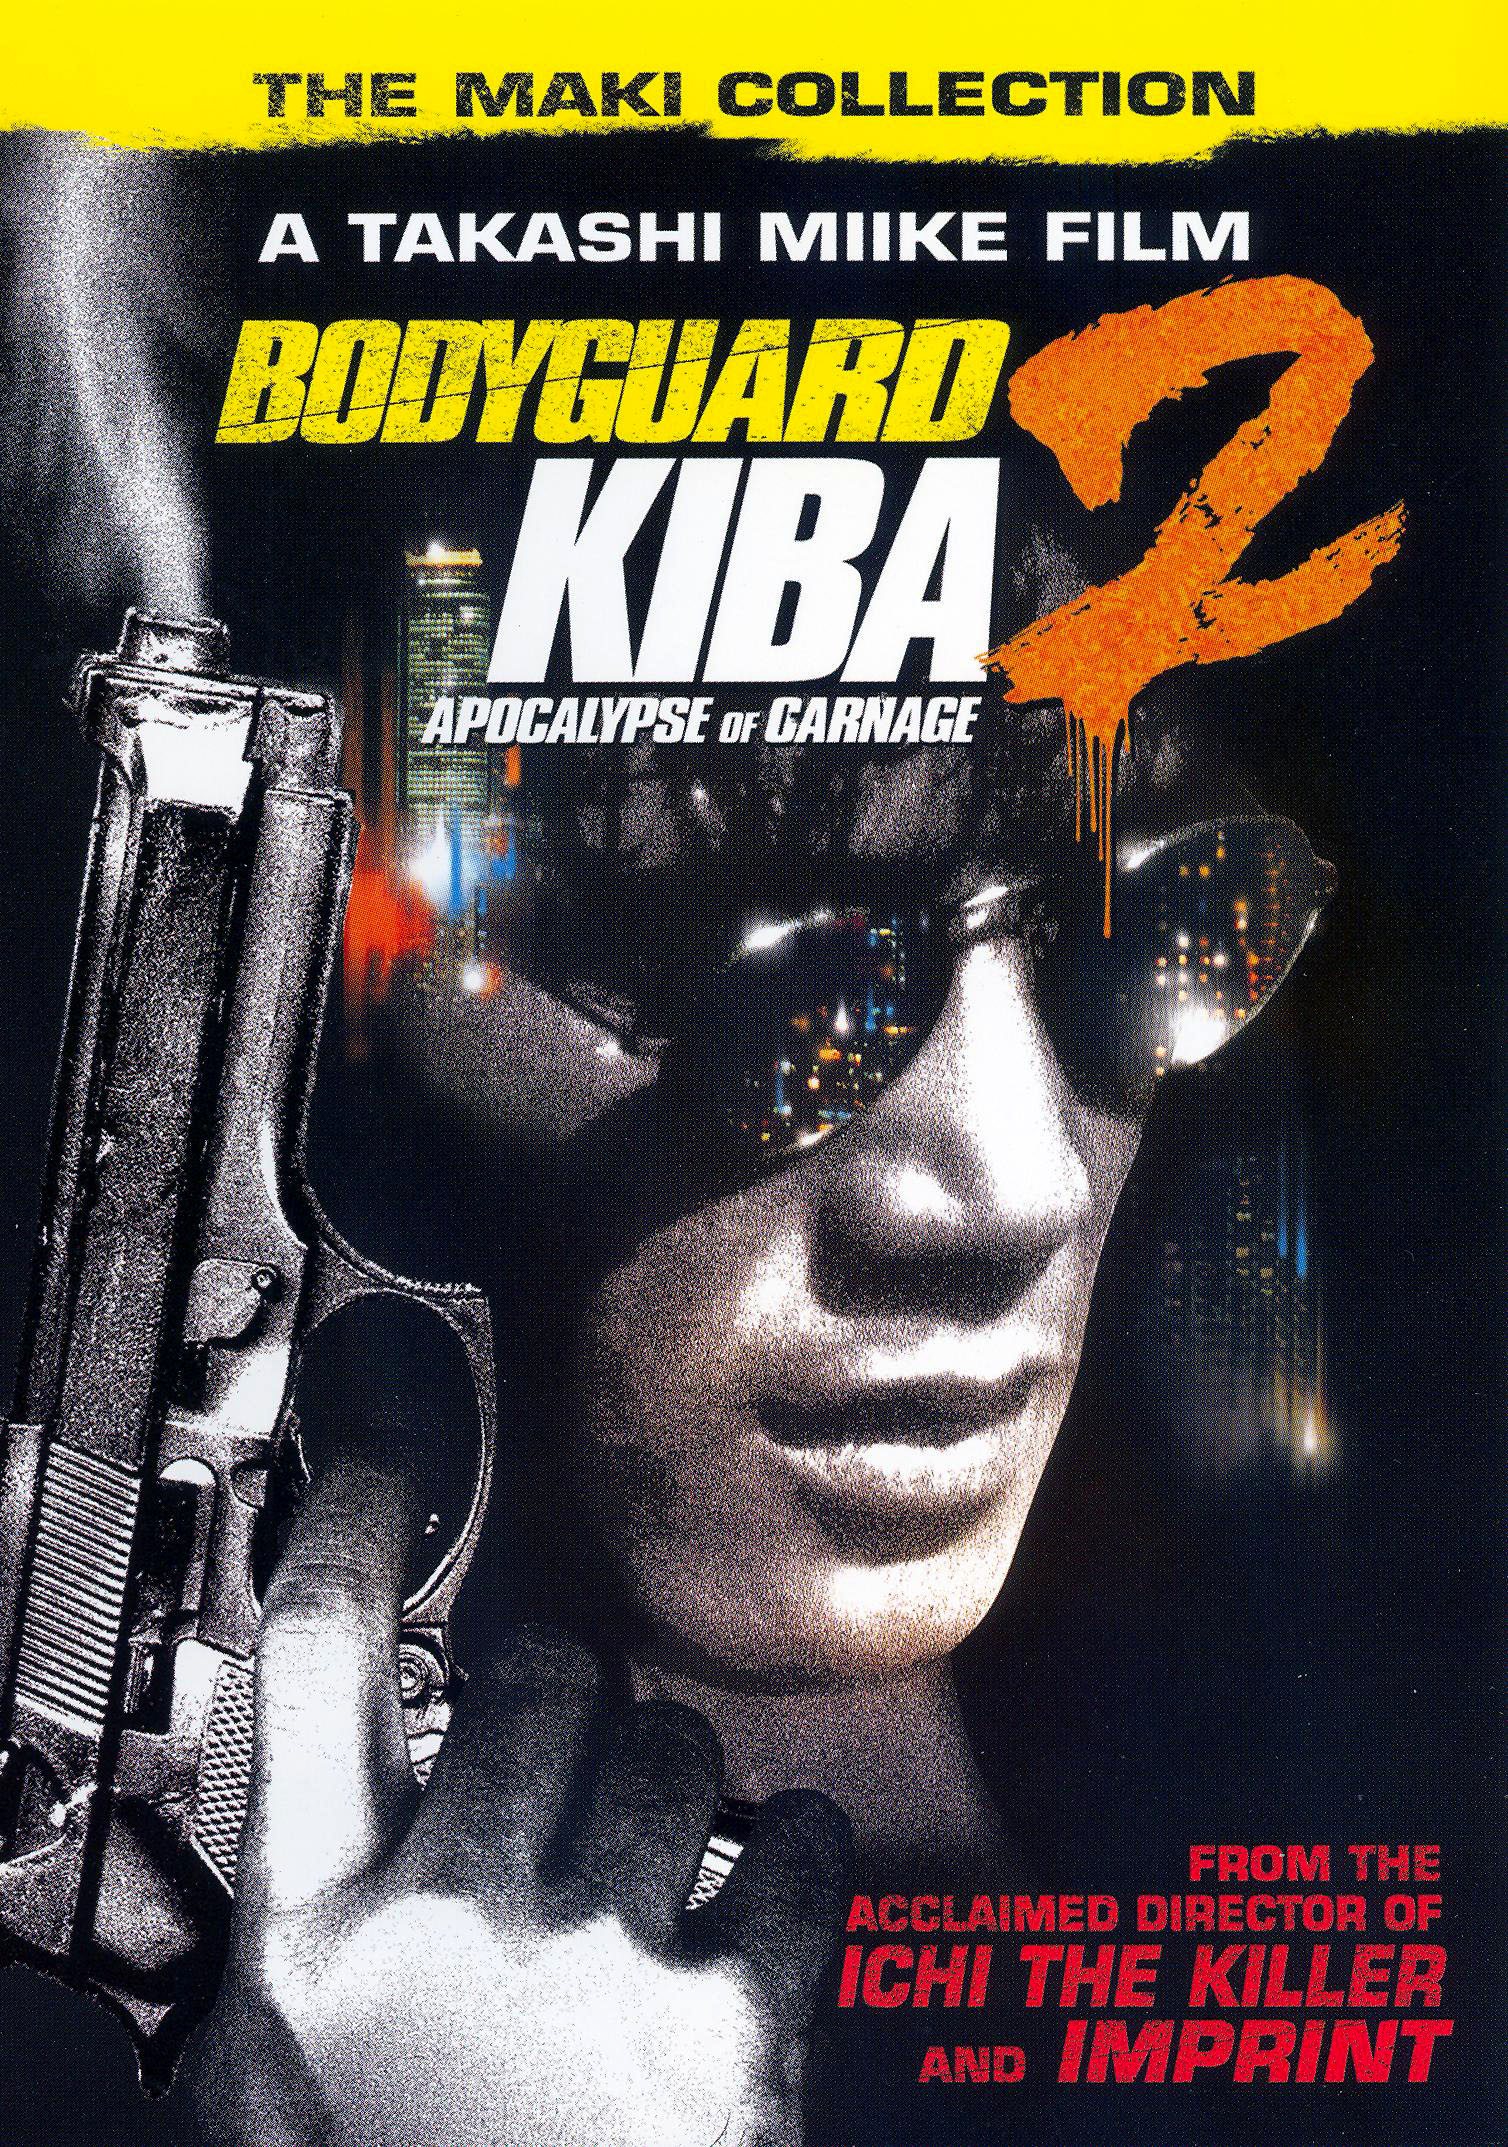 Bodyguard 1994 directed by rocco siffredi - 2 part 3